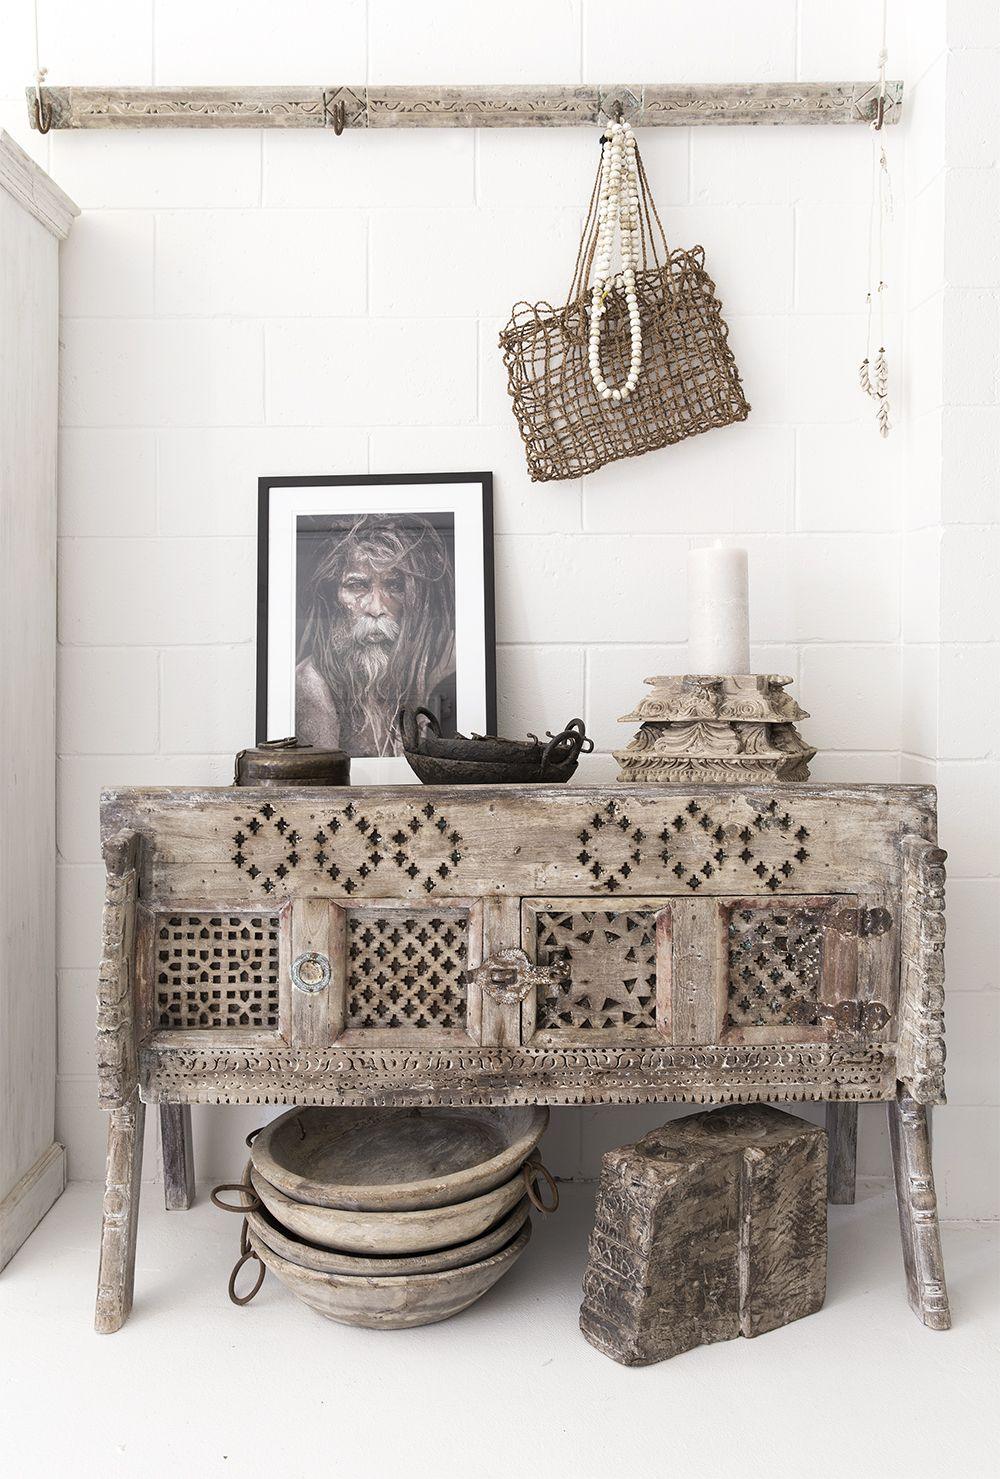 A rustic corner of our store with